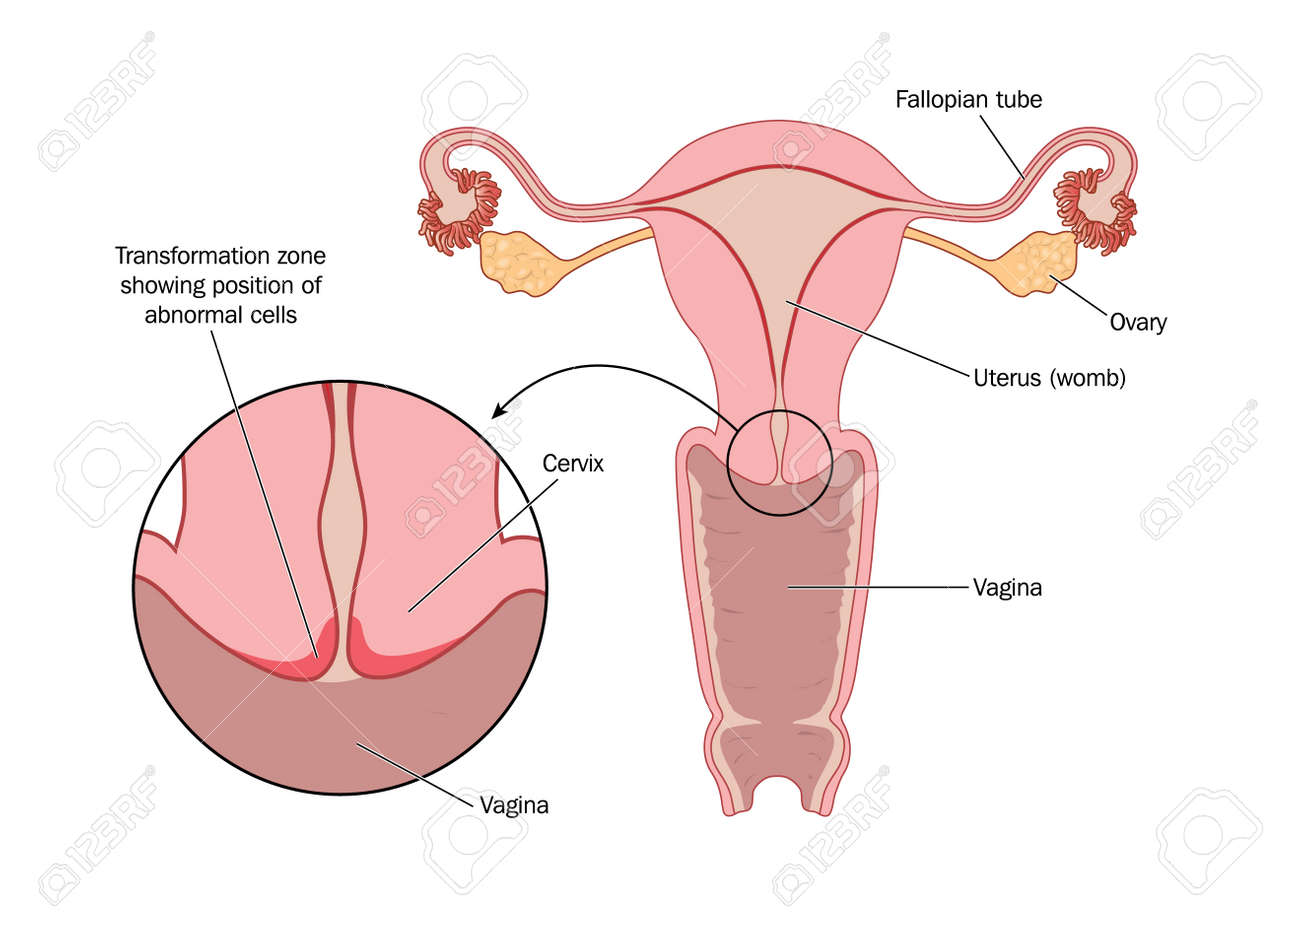 2041 cervix stock illustrations cliparts and royalty free cervix transformation zone of cervix illustration ccuart